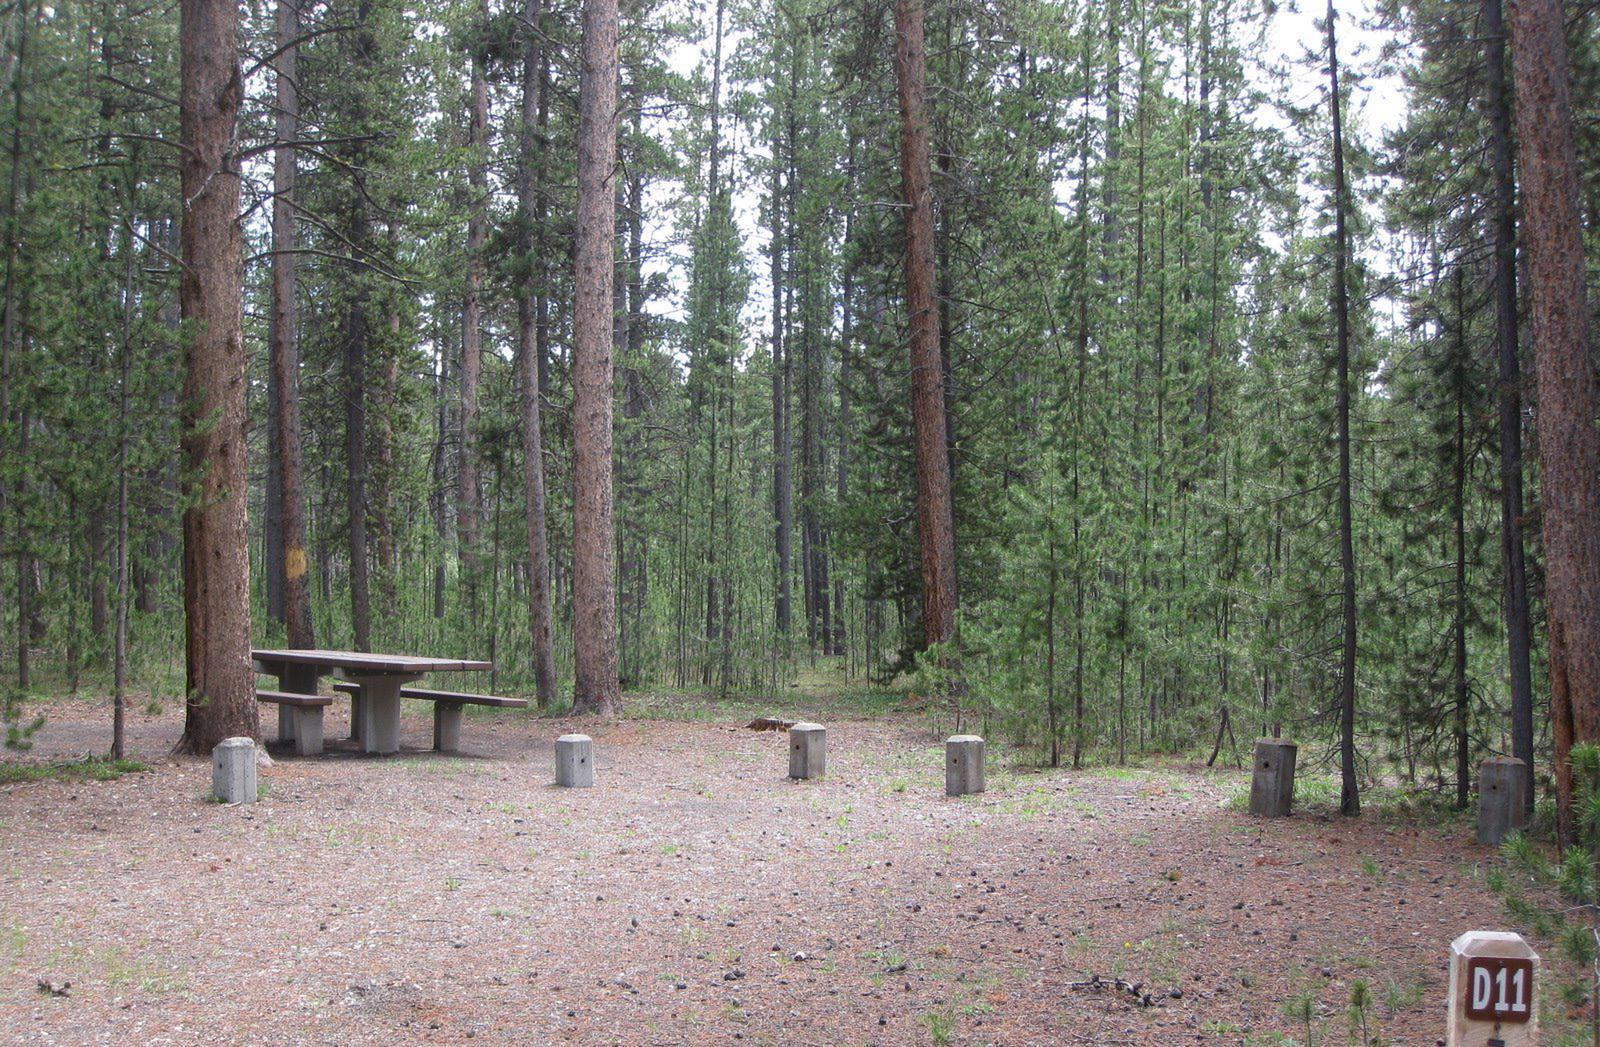 Site D11, surrounded by pine trees, picnic table & fire ringSite D11